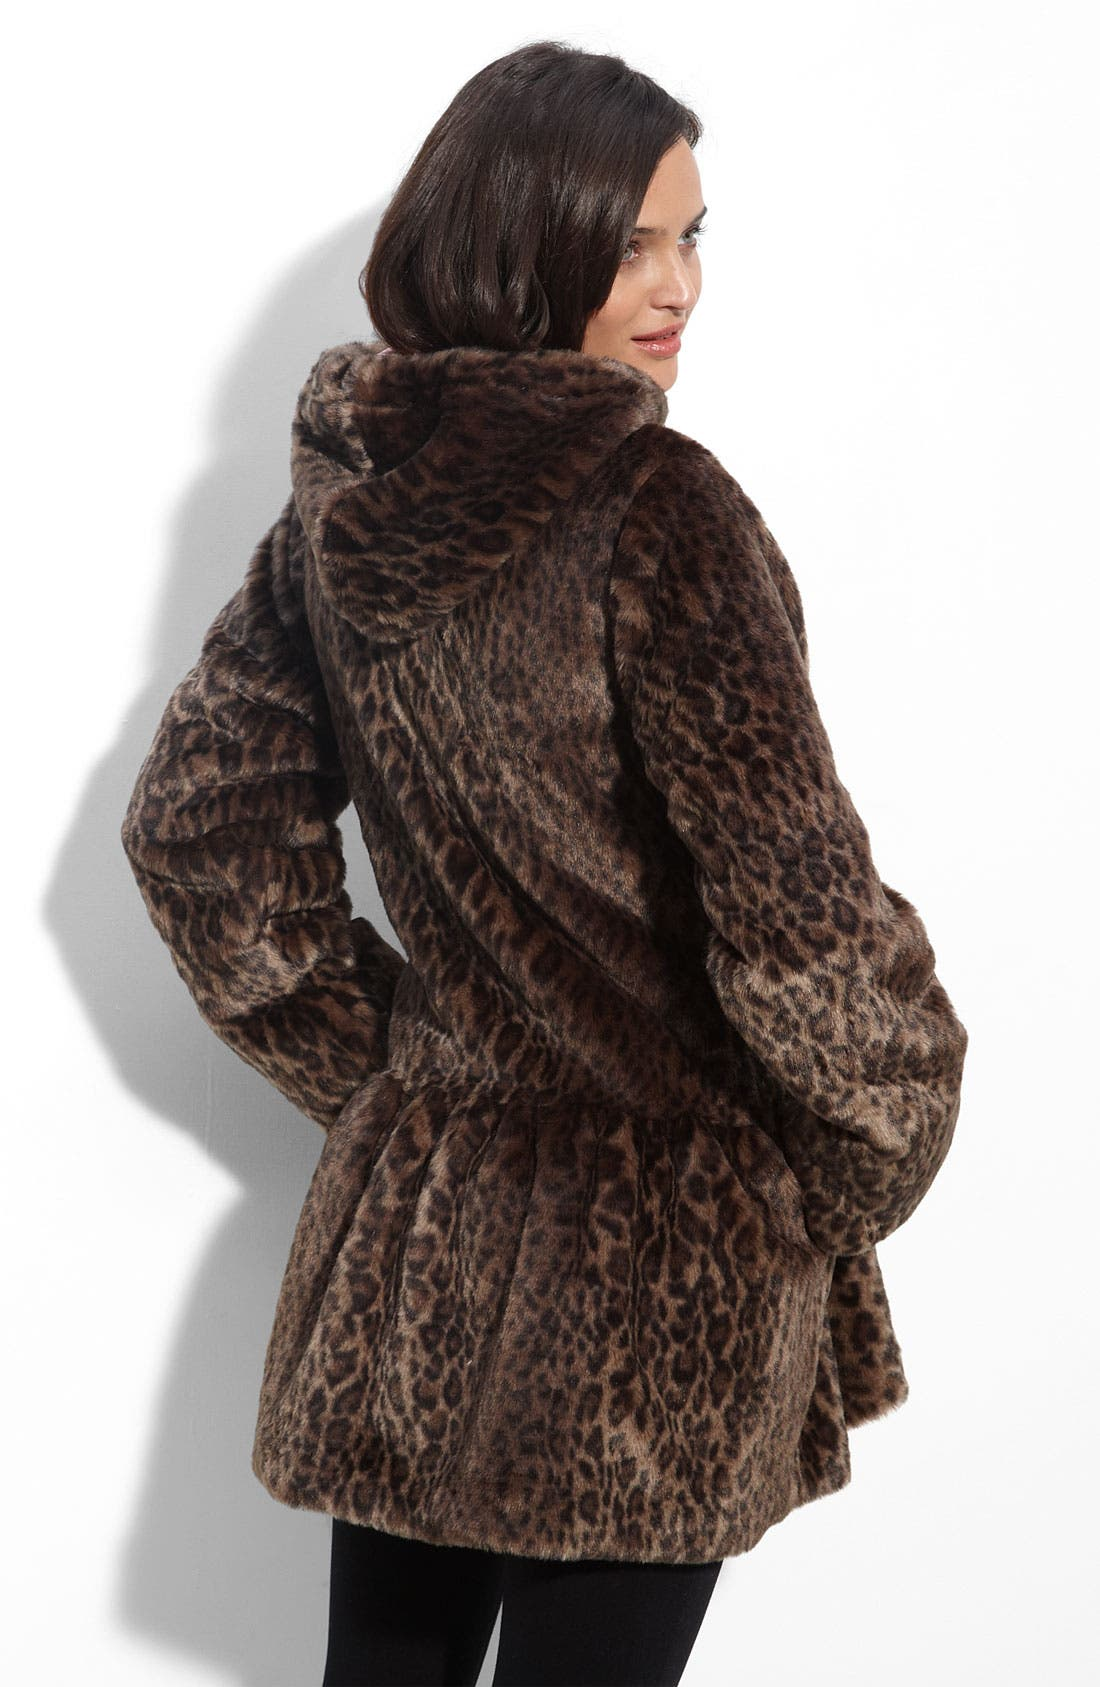 'All About Town' Leopard Print Faux Fur Hooded Jacket,                             Alternate thumbnail 2, color,                             903